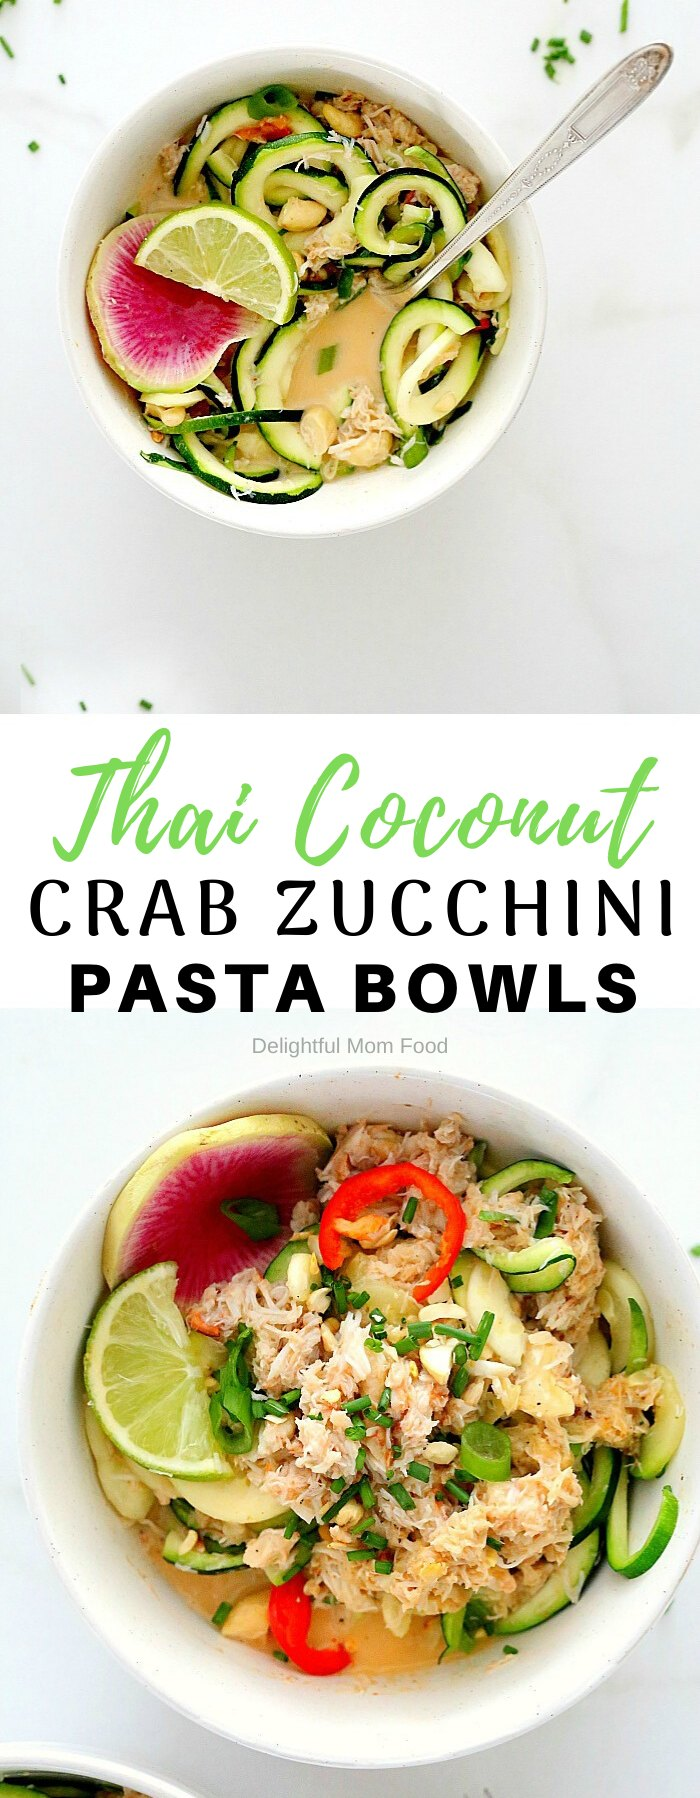 Zesty Thai coconut lime sauce makes this one amazing seafood zucchini pasta bowl (zoodles)! Made with zucchini pasta, crab meat, and cashews tossed in a sweet and spicy lemongrass, coconut milk based sauce for a low carb, gluten-free and dairy-free pasta meal! #healthy #zucchinipasta #zucchinipastabowl #healthydinner #seafood #crabmeat #thaicoconutbowls #dairyfreezucchinipasta #glutenfreebowls #glutenfree | Recipe at Delightful Mom Food